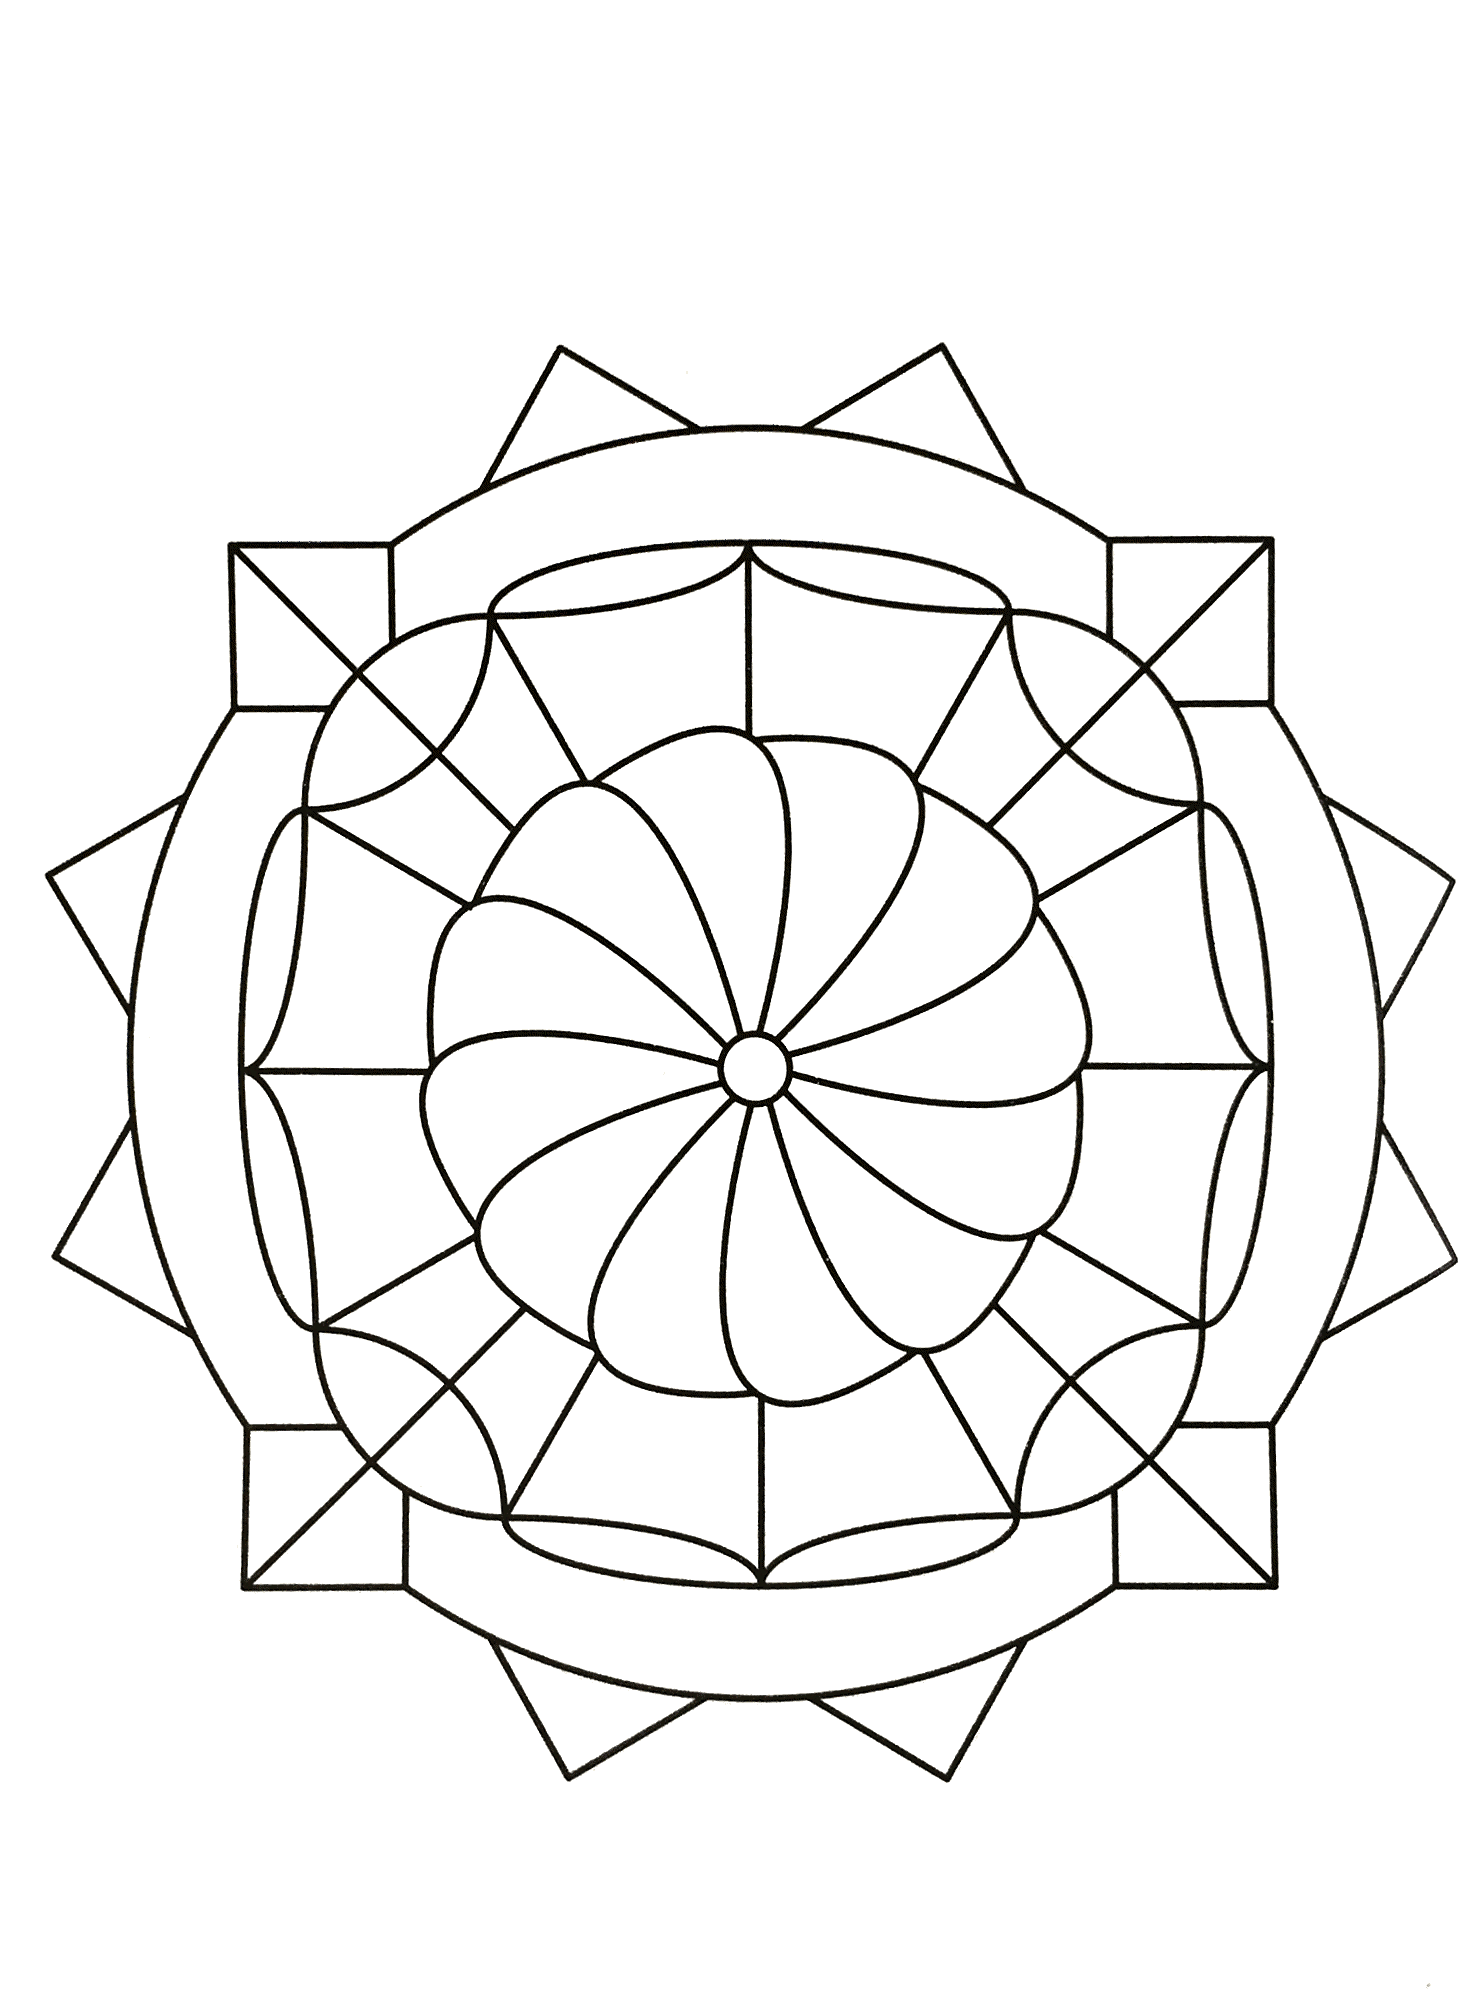 Simple mandala 80 | Mandalas Coloring pages for kids to print & color